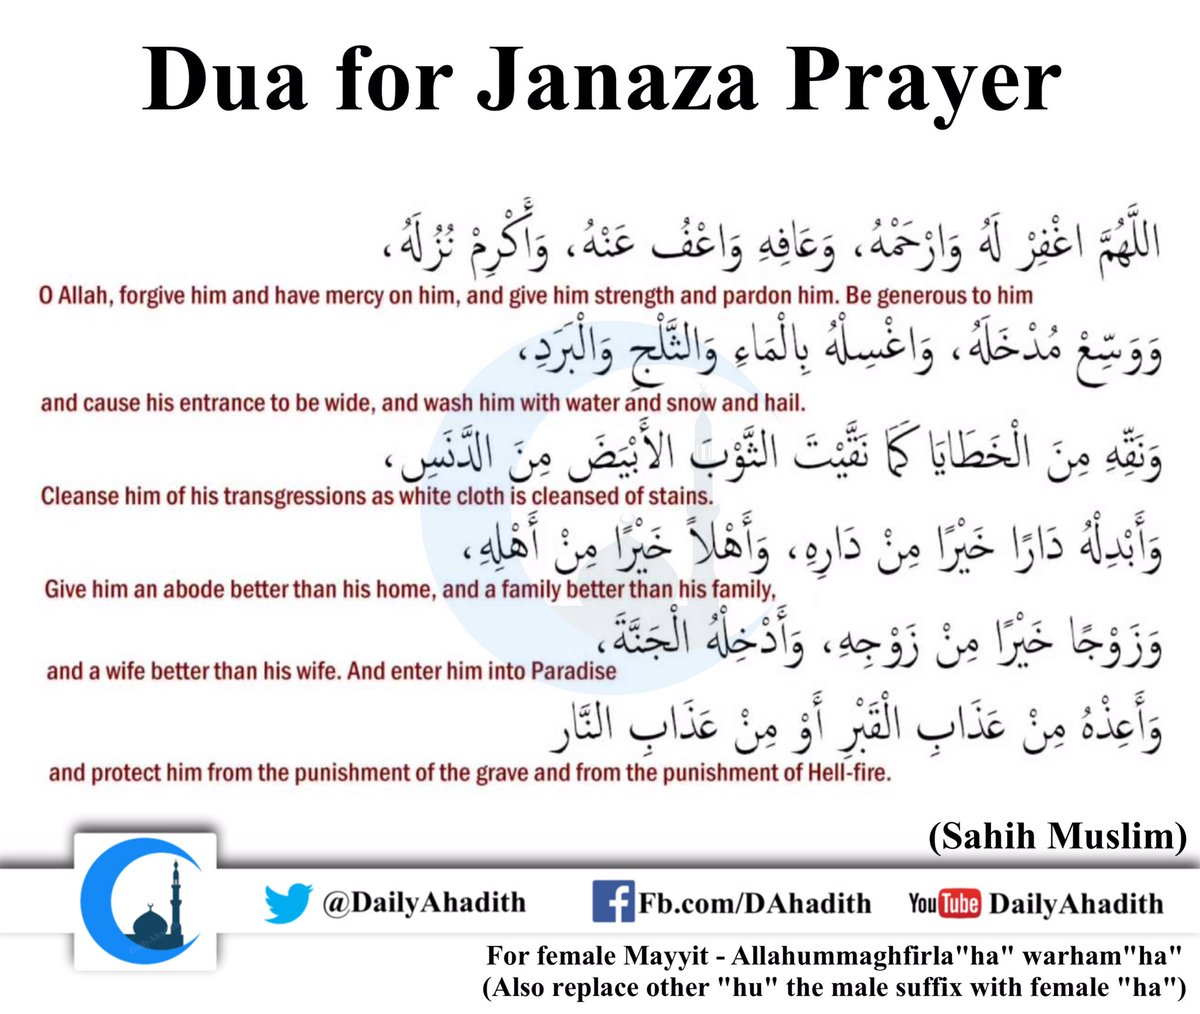 Daily a Hadith on Twitter: